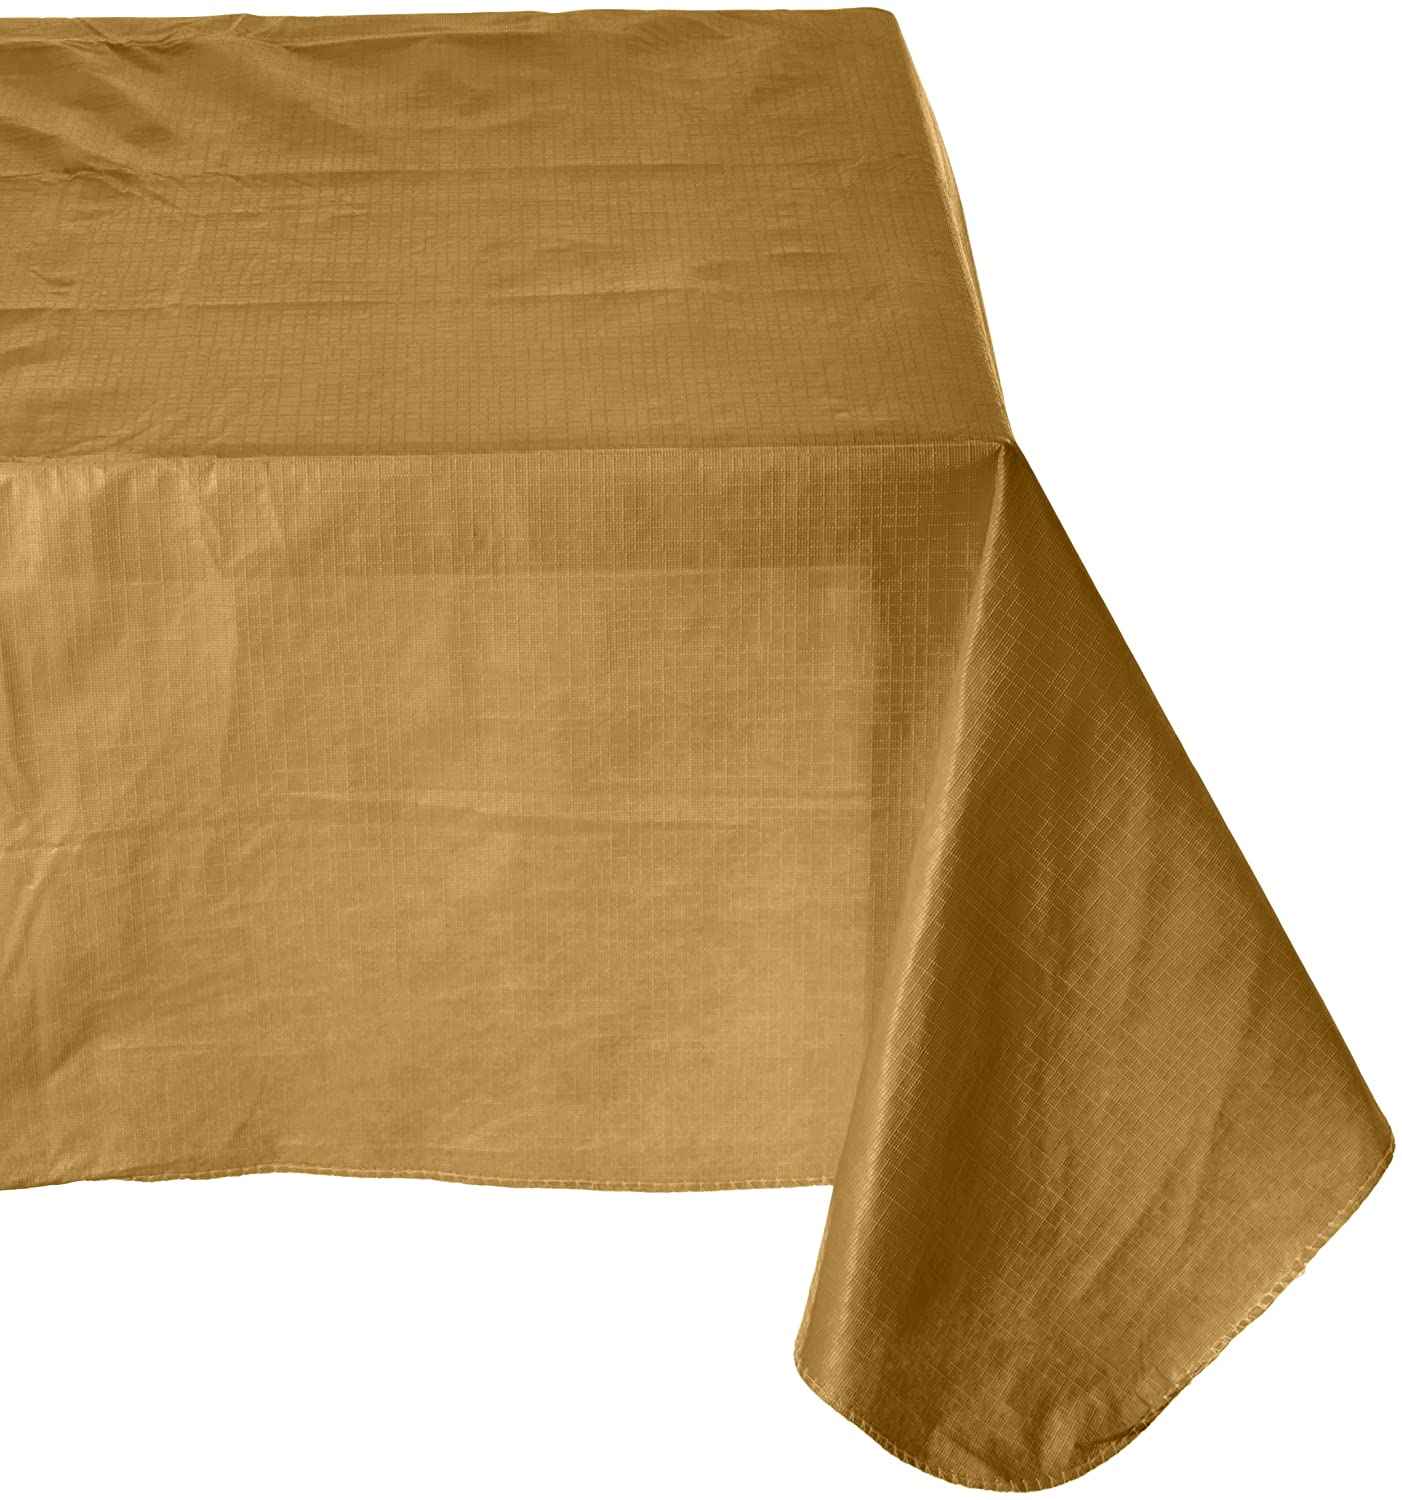 Amscan Flannel Backed Oblong Table Cover | Gold | 52 x 90| Party Supply | 6 ct.